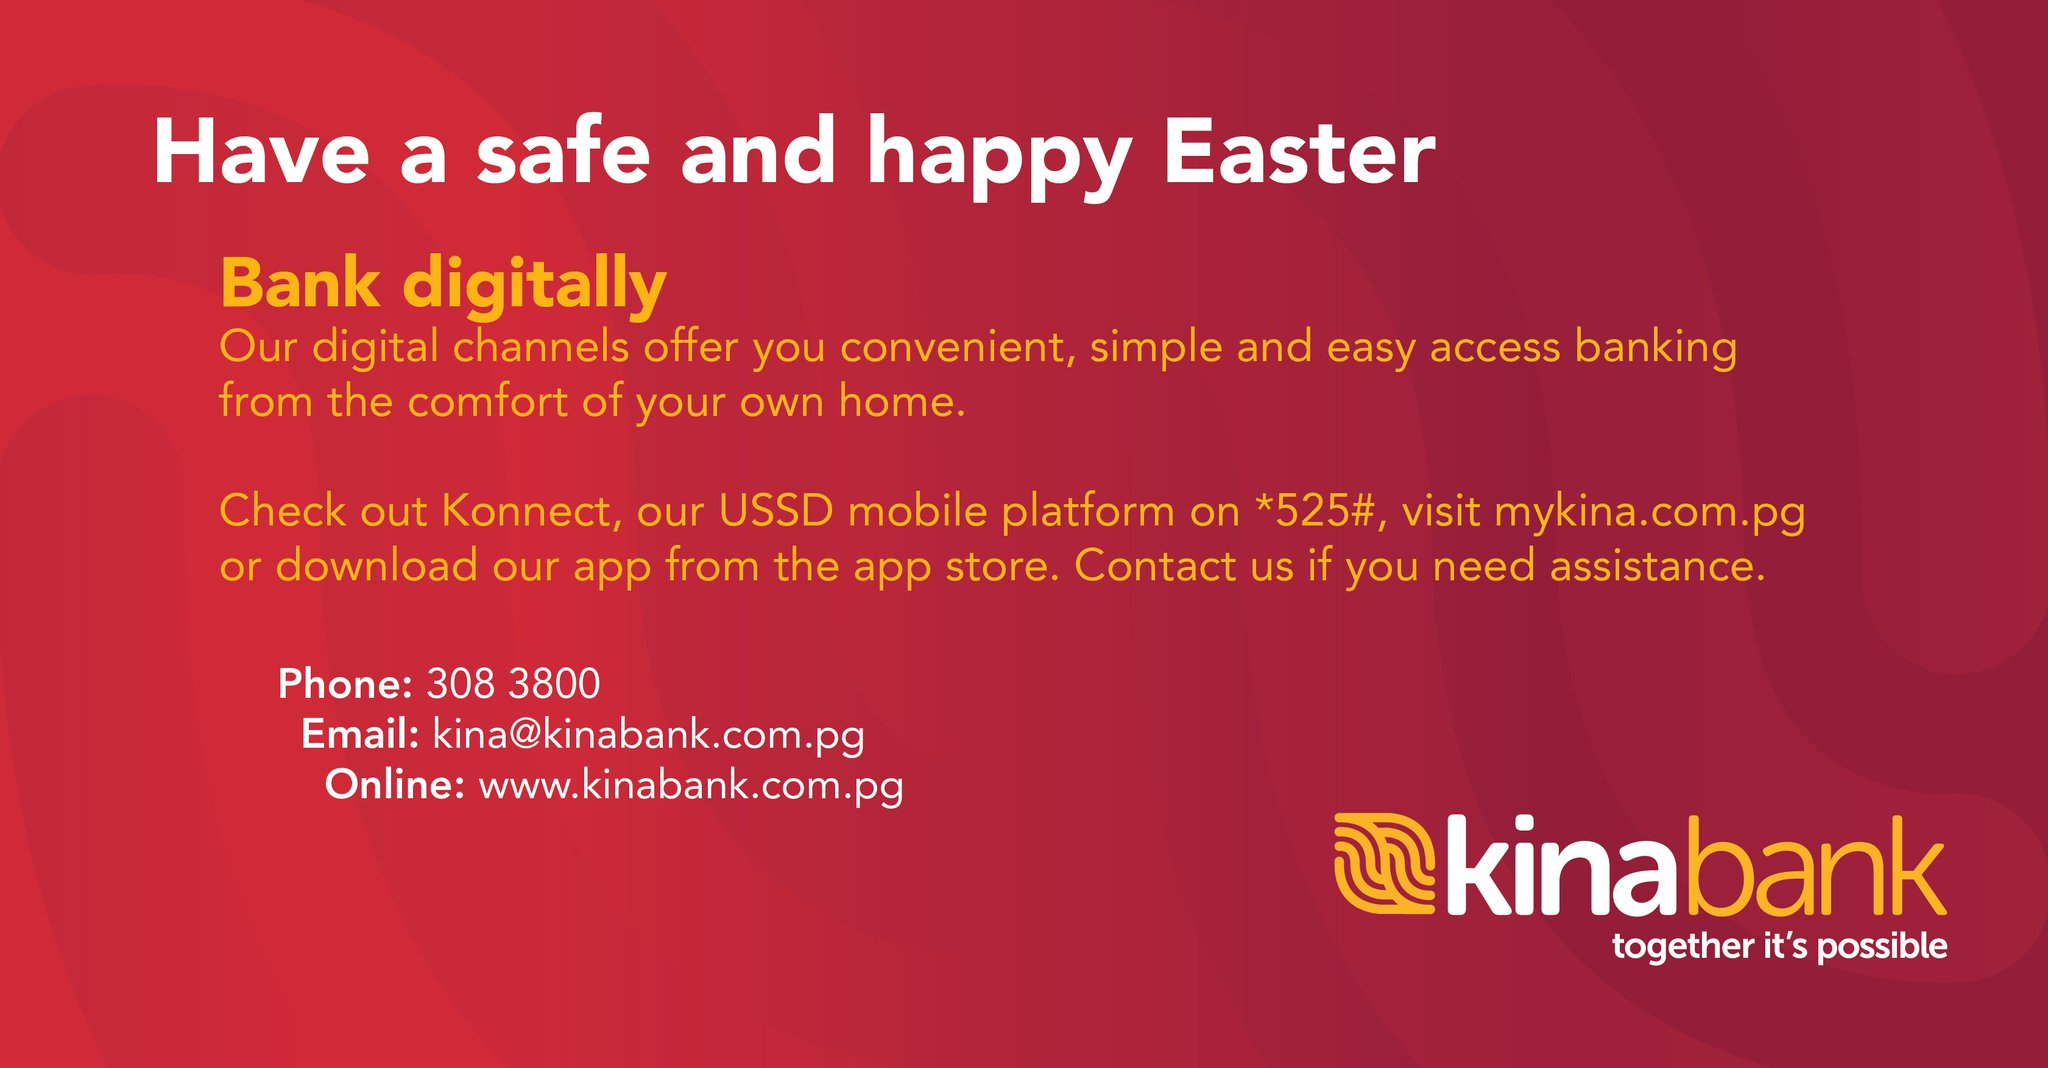 Kina Bank On Twitter Easter Weekend Closure Announcement Our Branches Will Be Closed On Friday 10 April To Monday 13 April For The Easter Public Holiday We Will Resume Our Normal Trading